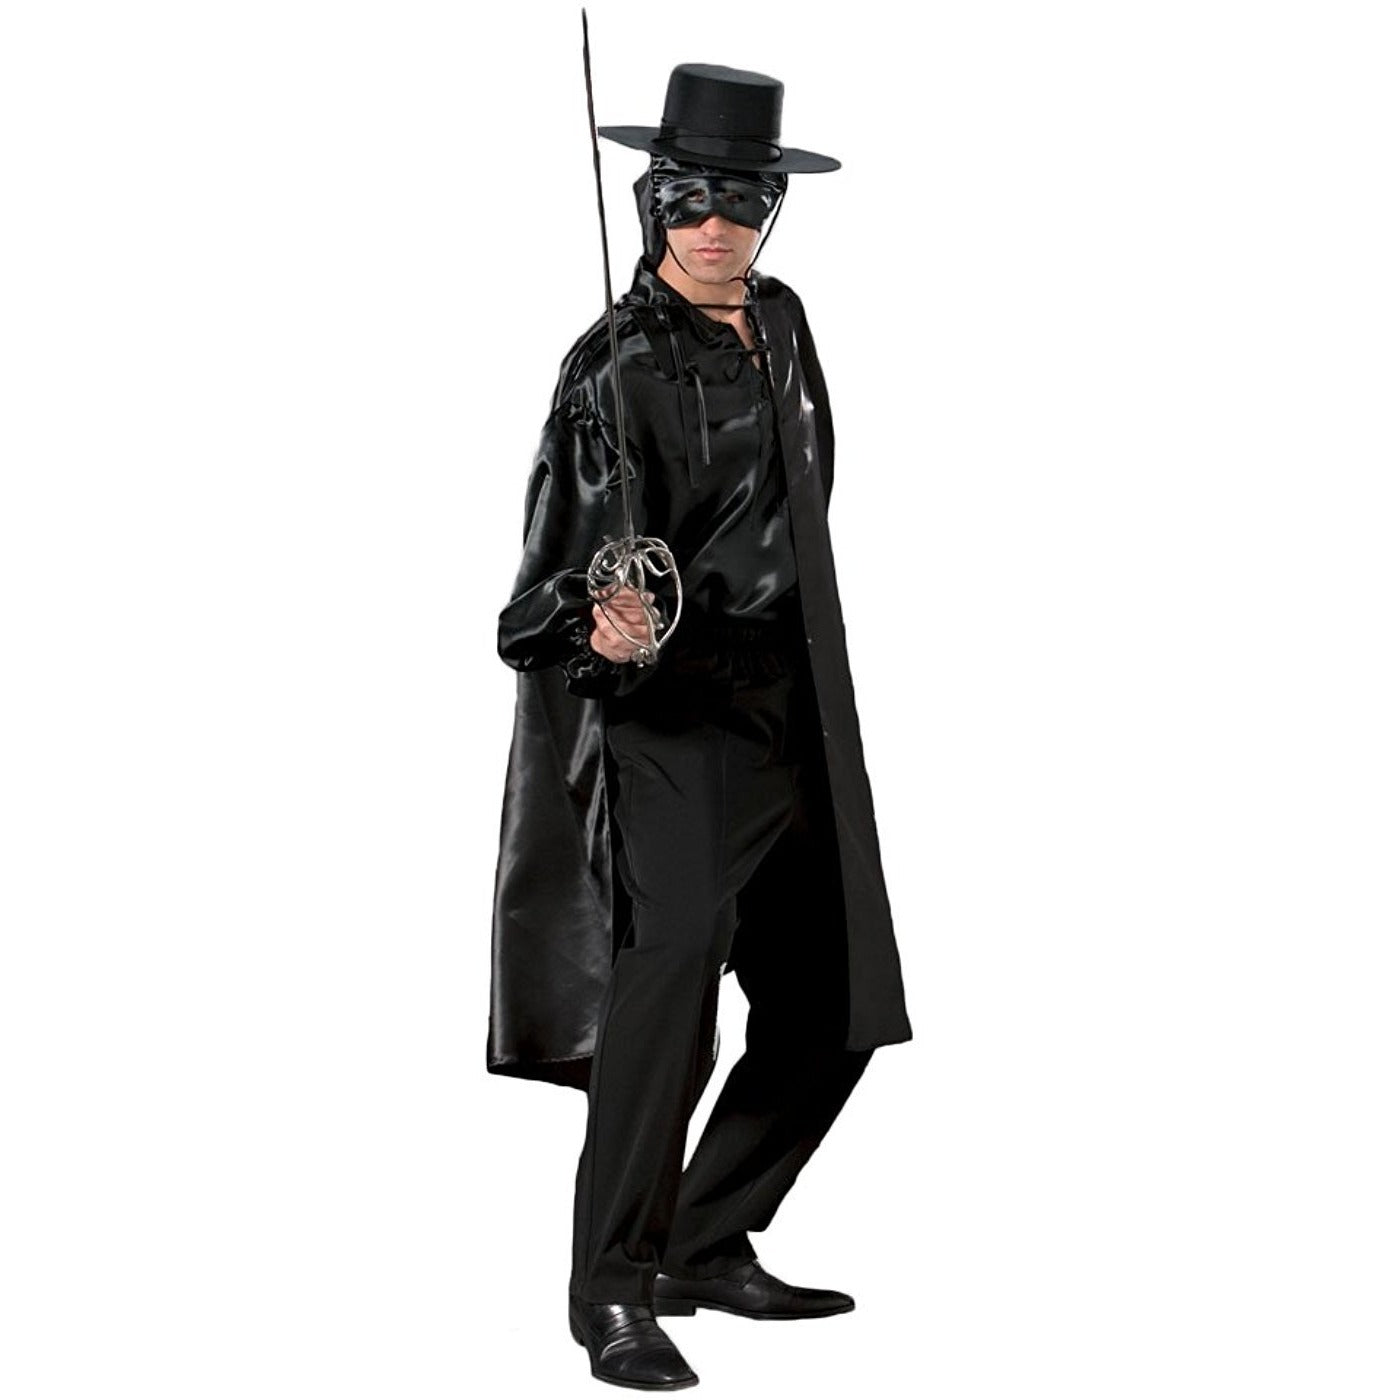 Creative Costuming Theater And Halloween Costume Rental And ...